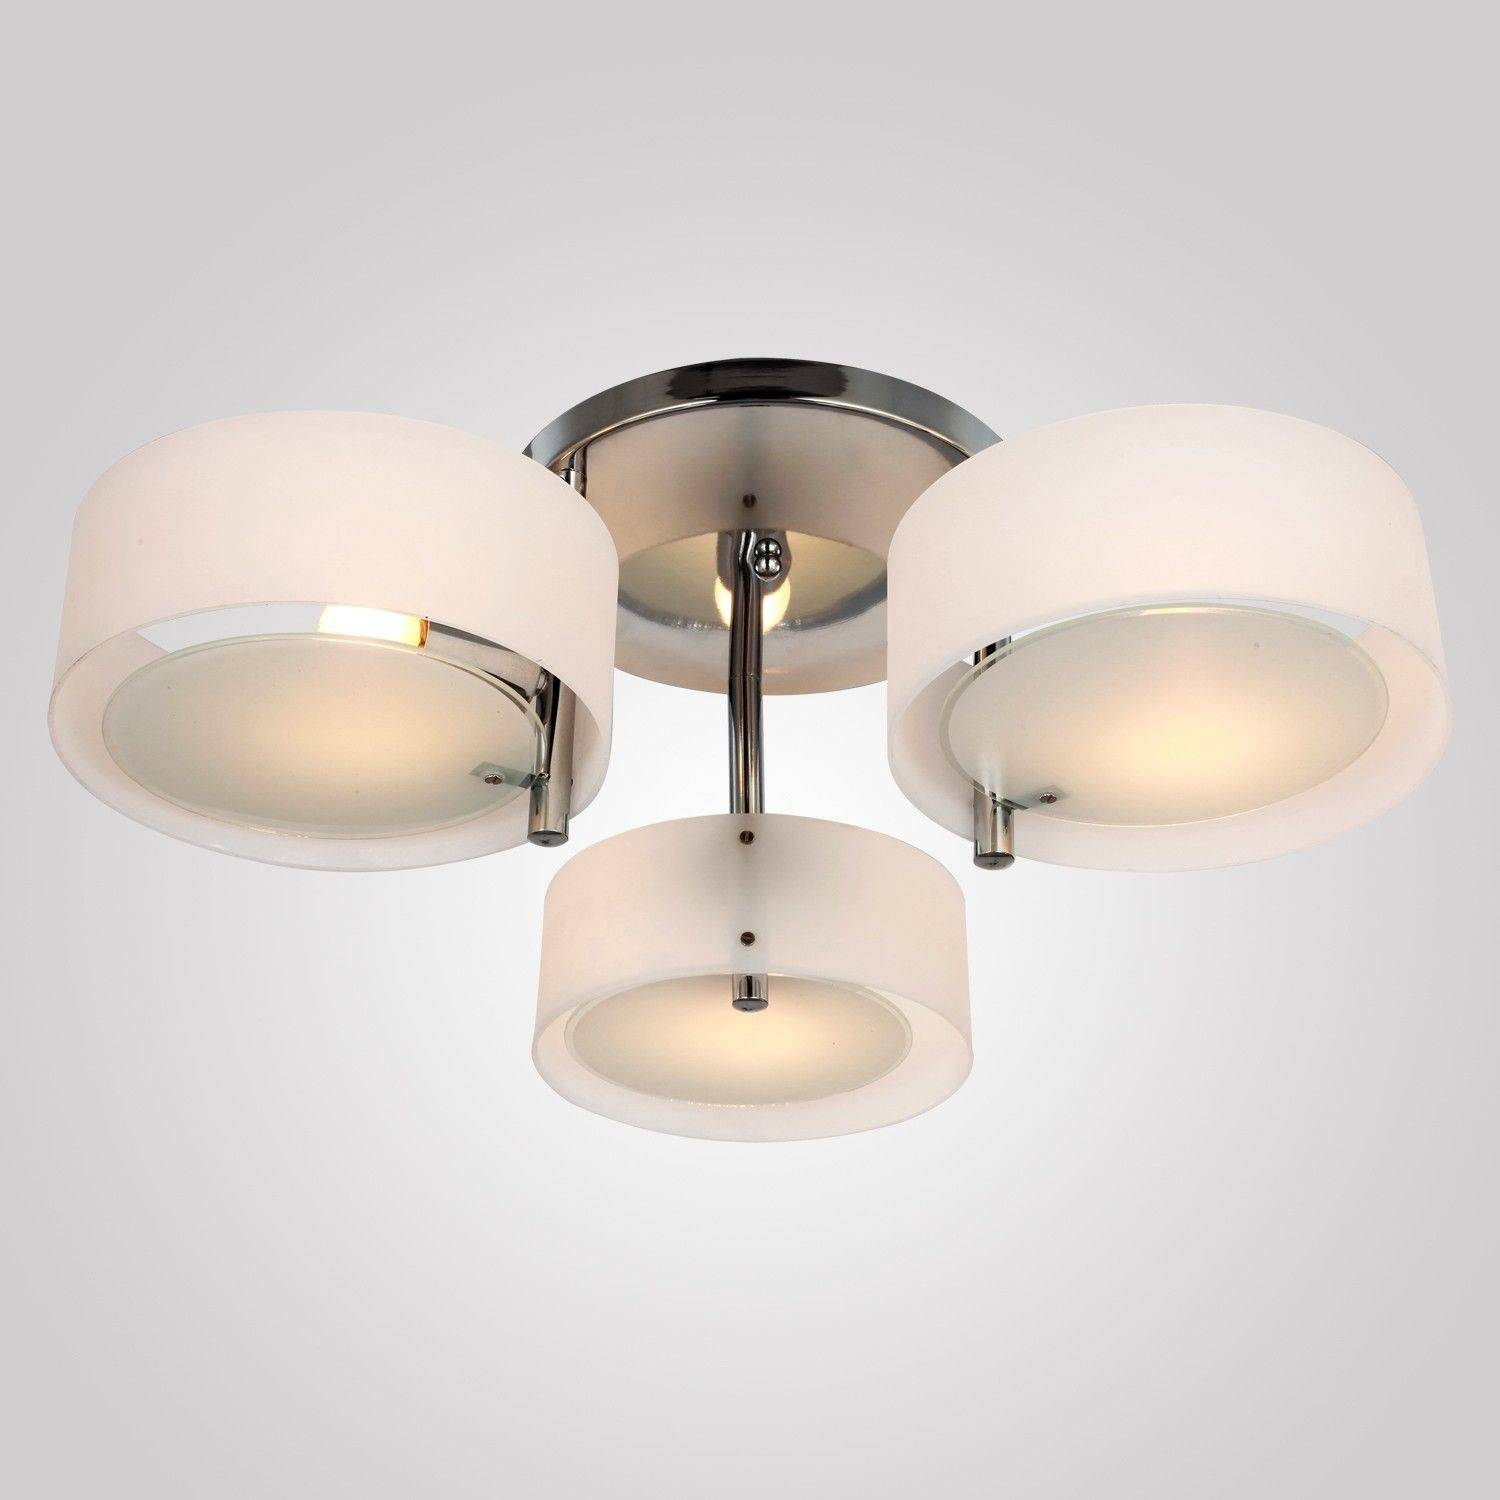 Epic Ceiling Mount Light Fixtures 74 In Clearance Pendant Lighting Throughout Clearance Pendant Lighting (View 4 of 15)